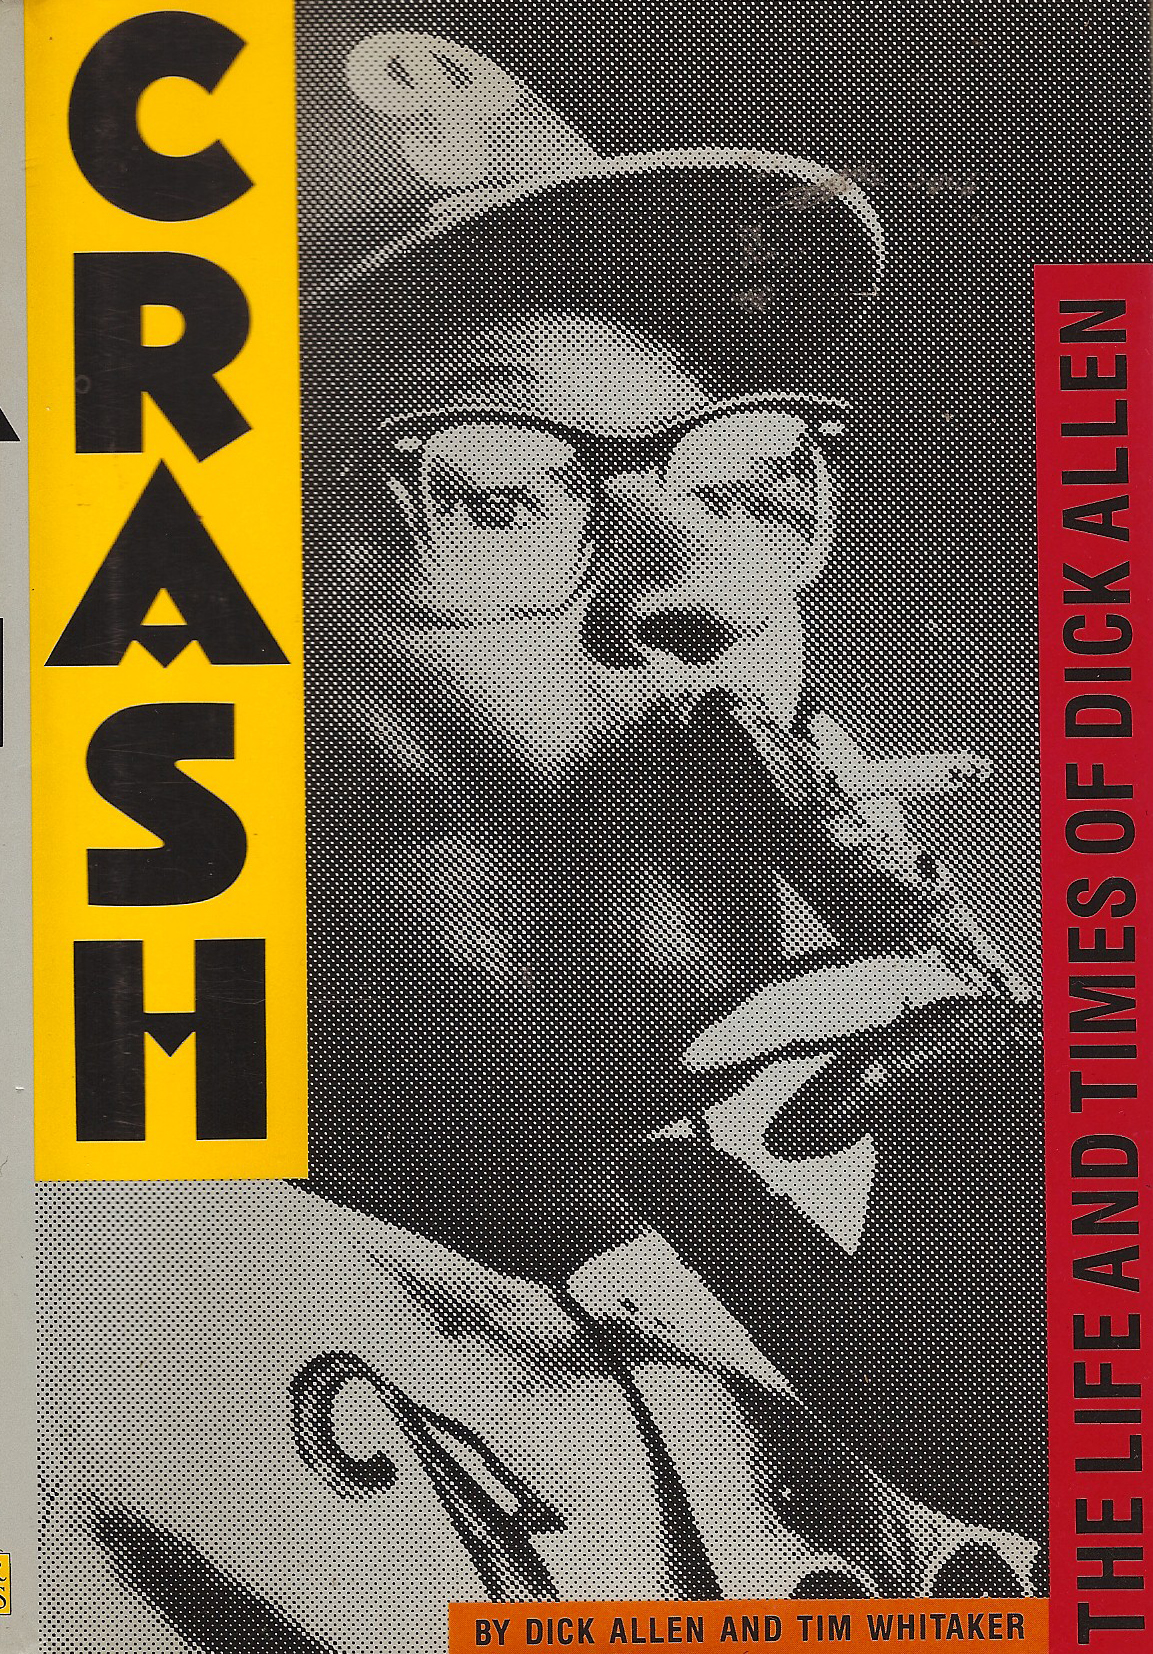 Crash: The Life and Times of Dick Allen (and other Dick Allen stuff